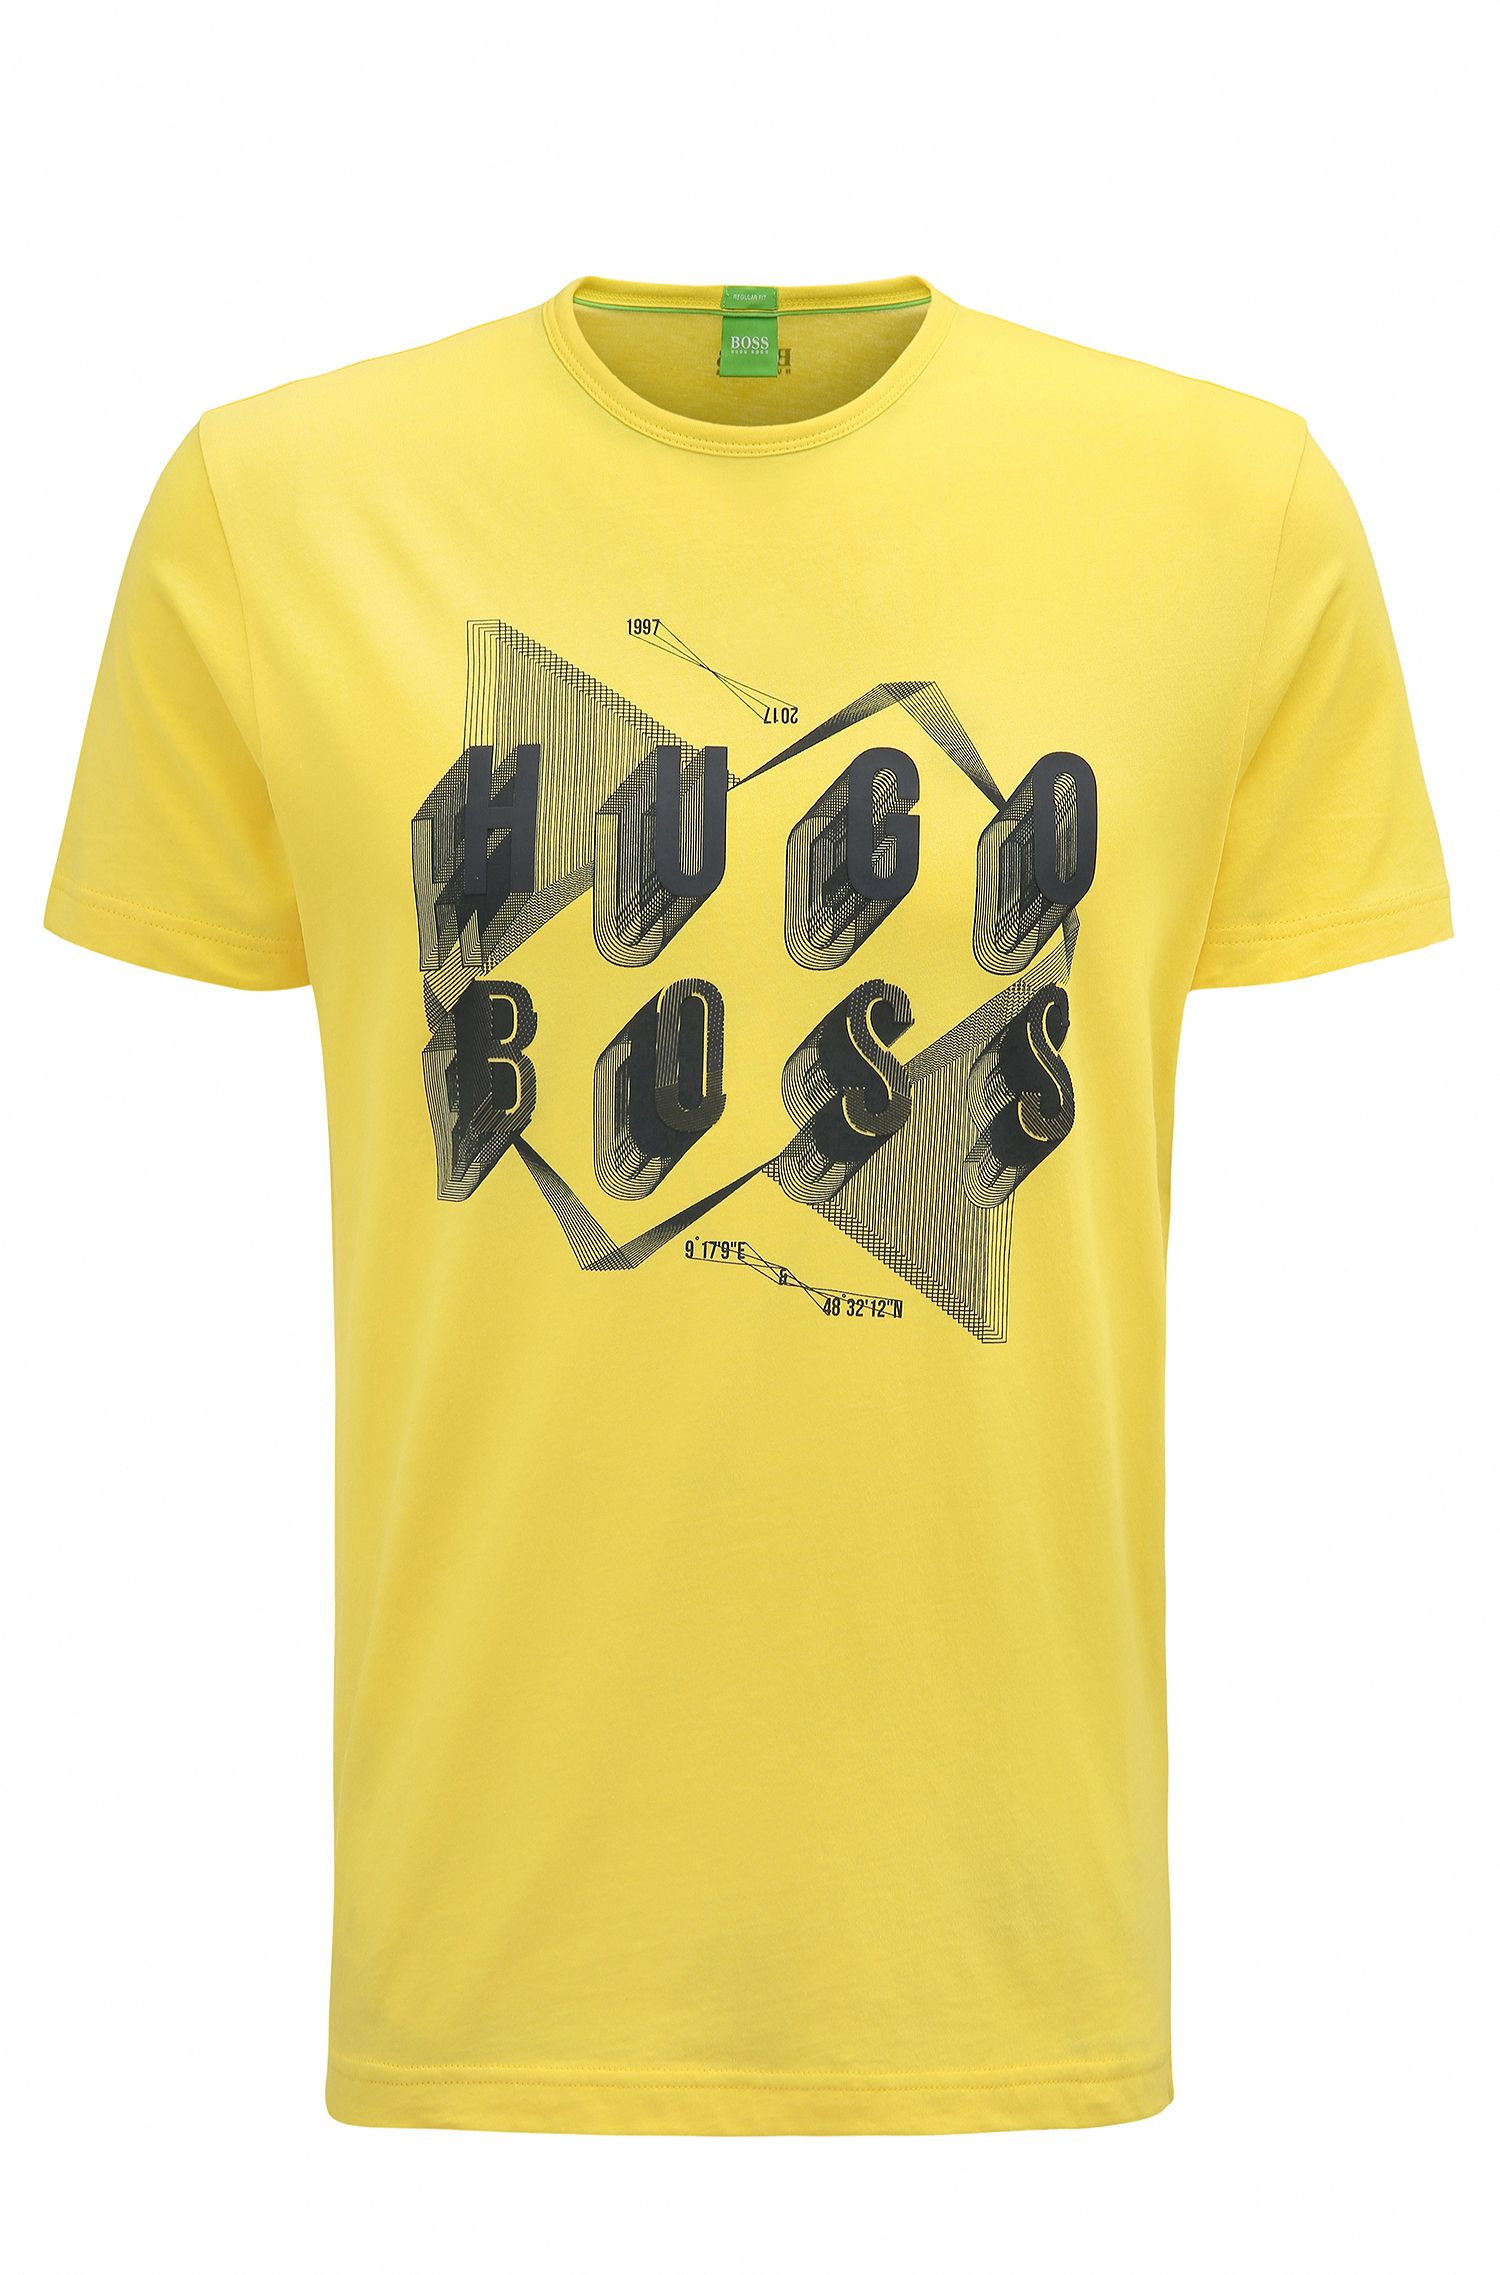 Cotton Graphic T-Shirt | Teeos